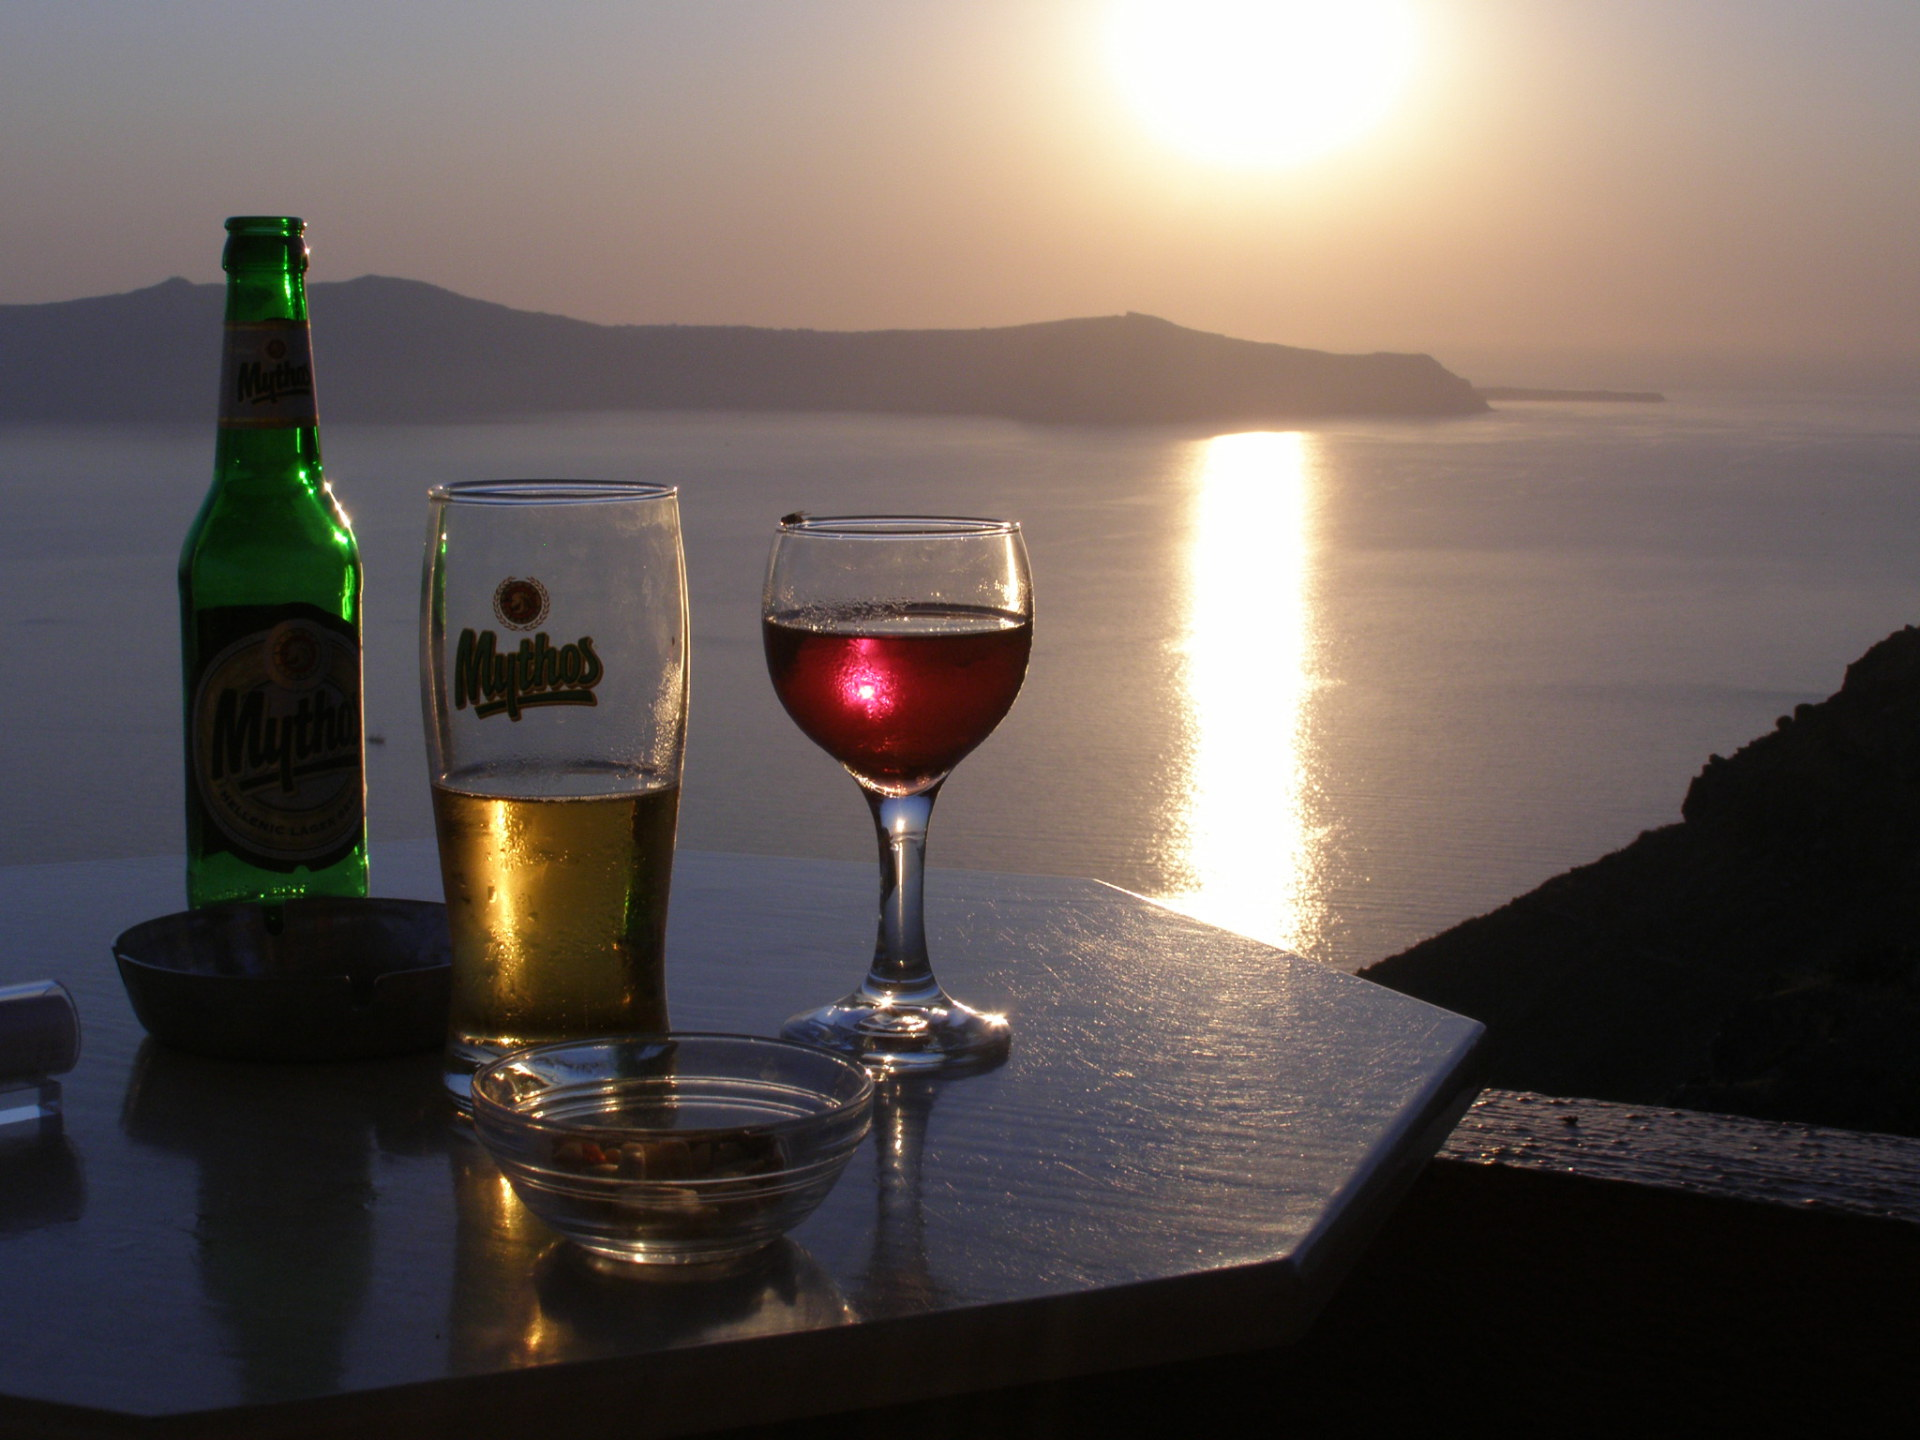 Our last stop was Santorini, an island with unforgettable sunsets. Santorini, Greece: Chapter 61, You must only to love them. http://mershon.wordpress.com